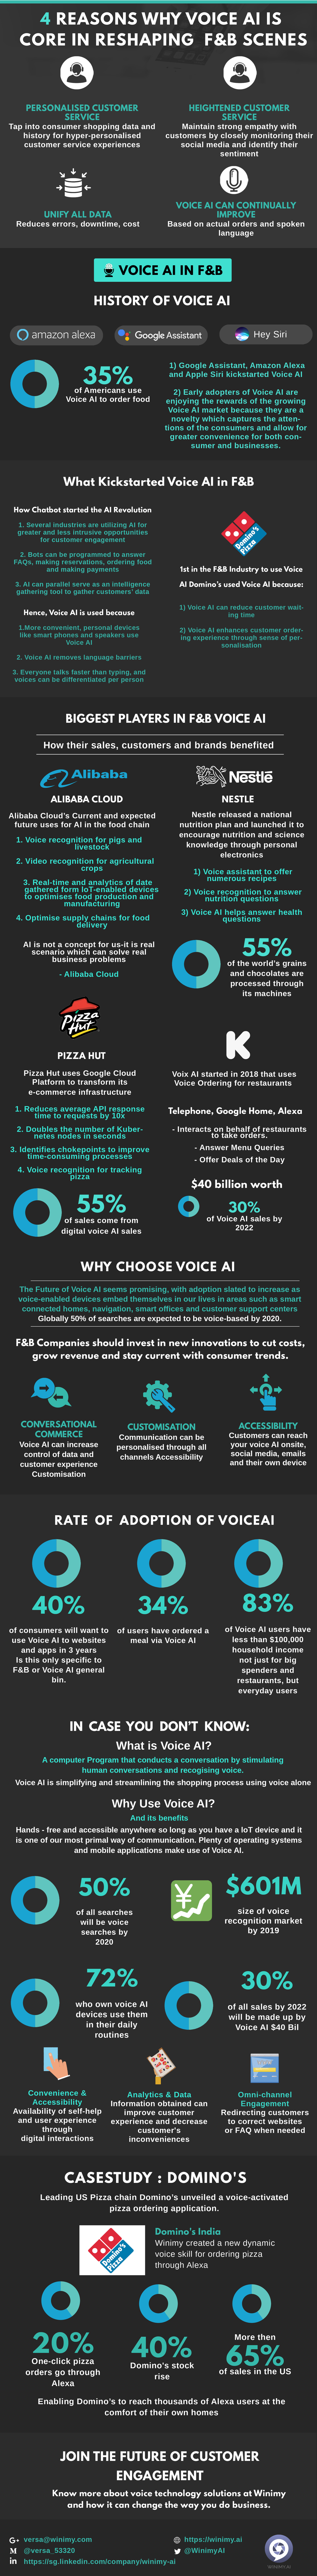 Infographic on Voice AI F&B